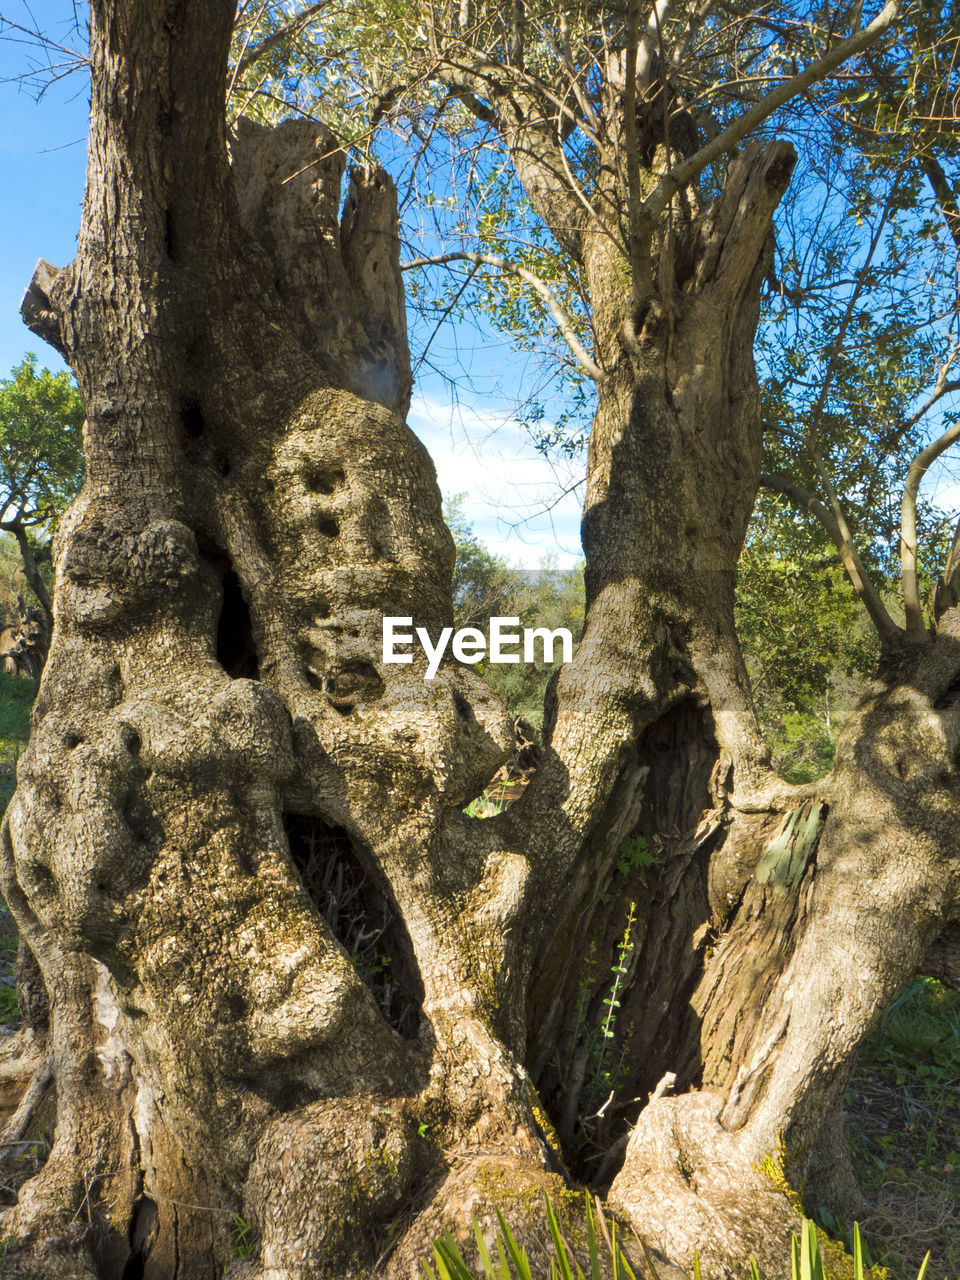 tree, tree trunk, day, growth, nature, sunlight, no people, outdoors, low angle view, branch, beauty in nature, forest, scenics, sky, close-up, ancient civilization